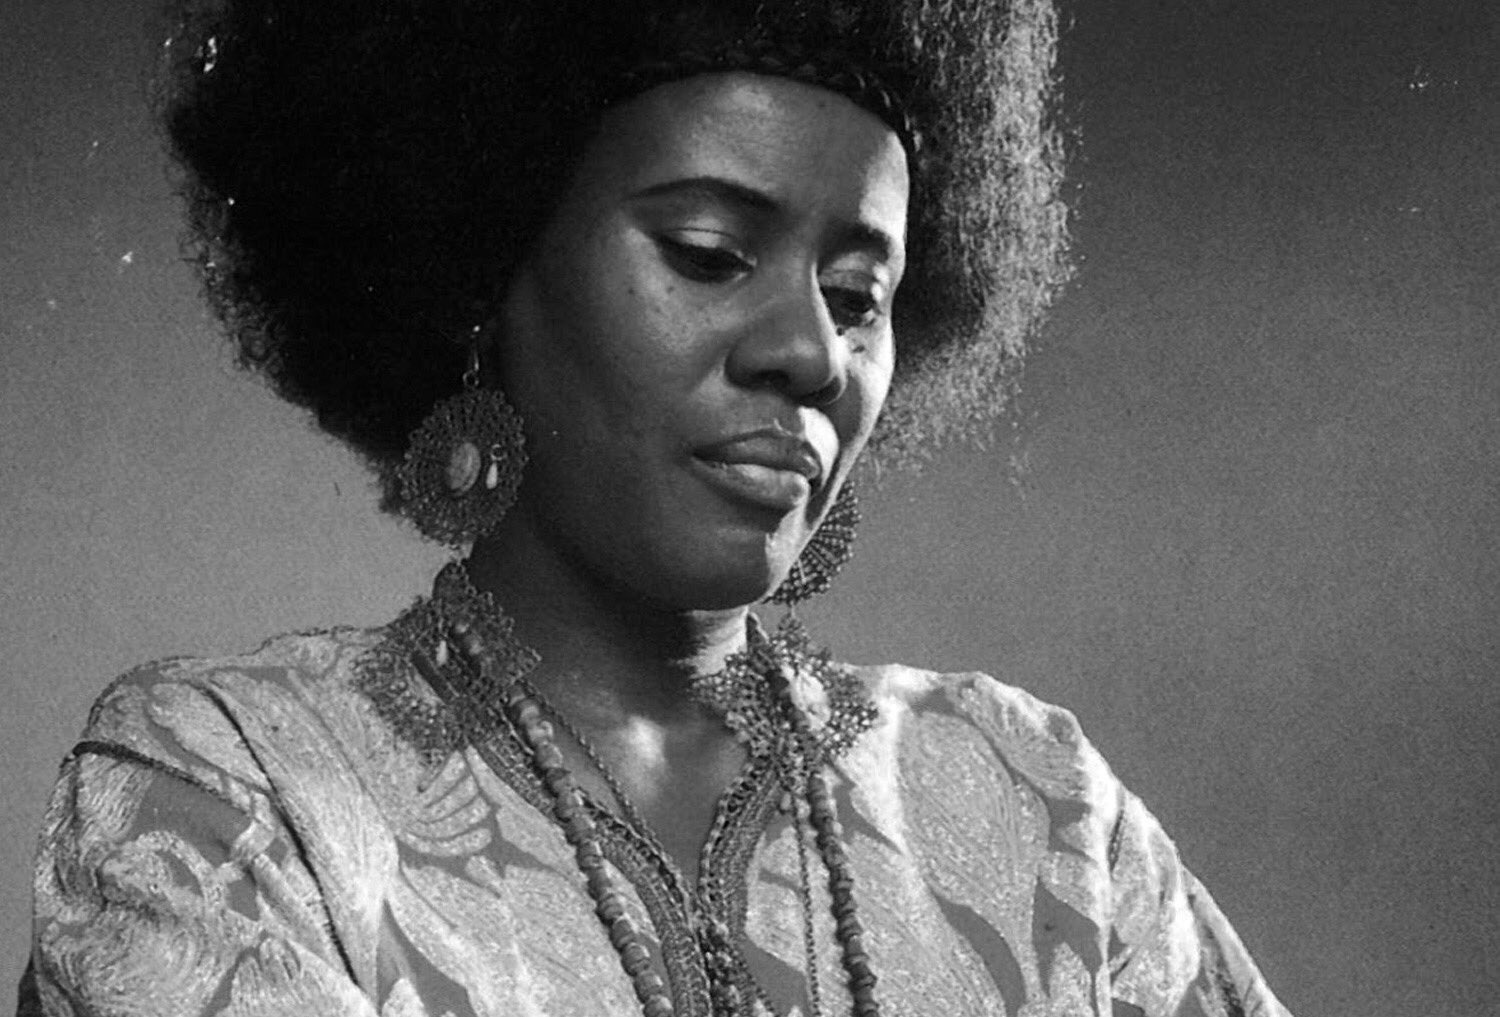 Happy Birthday Alice Coltrane in the cosmos. One of the greatest artists of the 20th C.